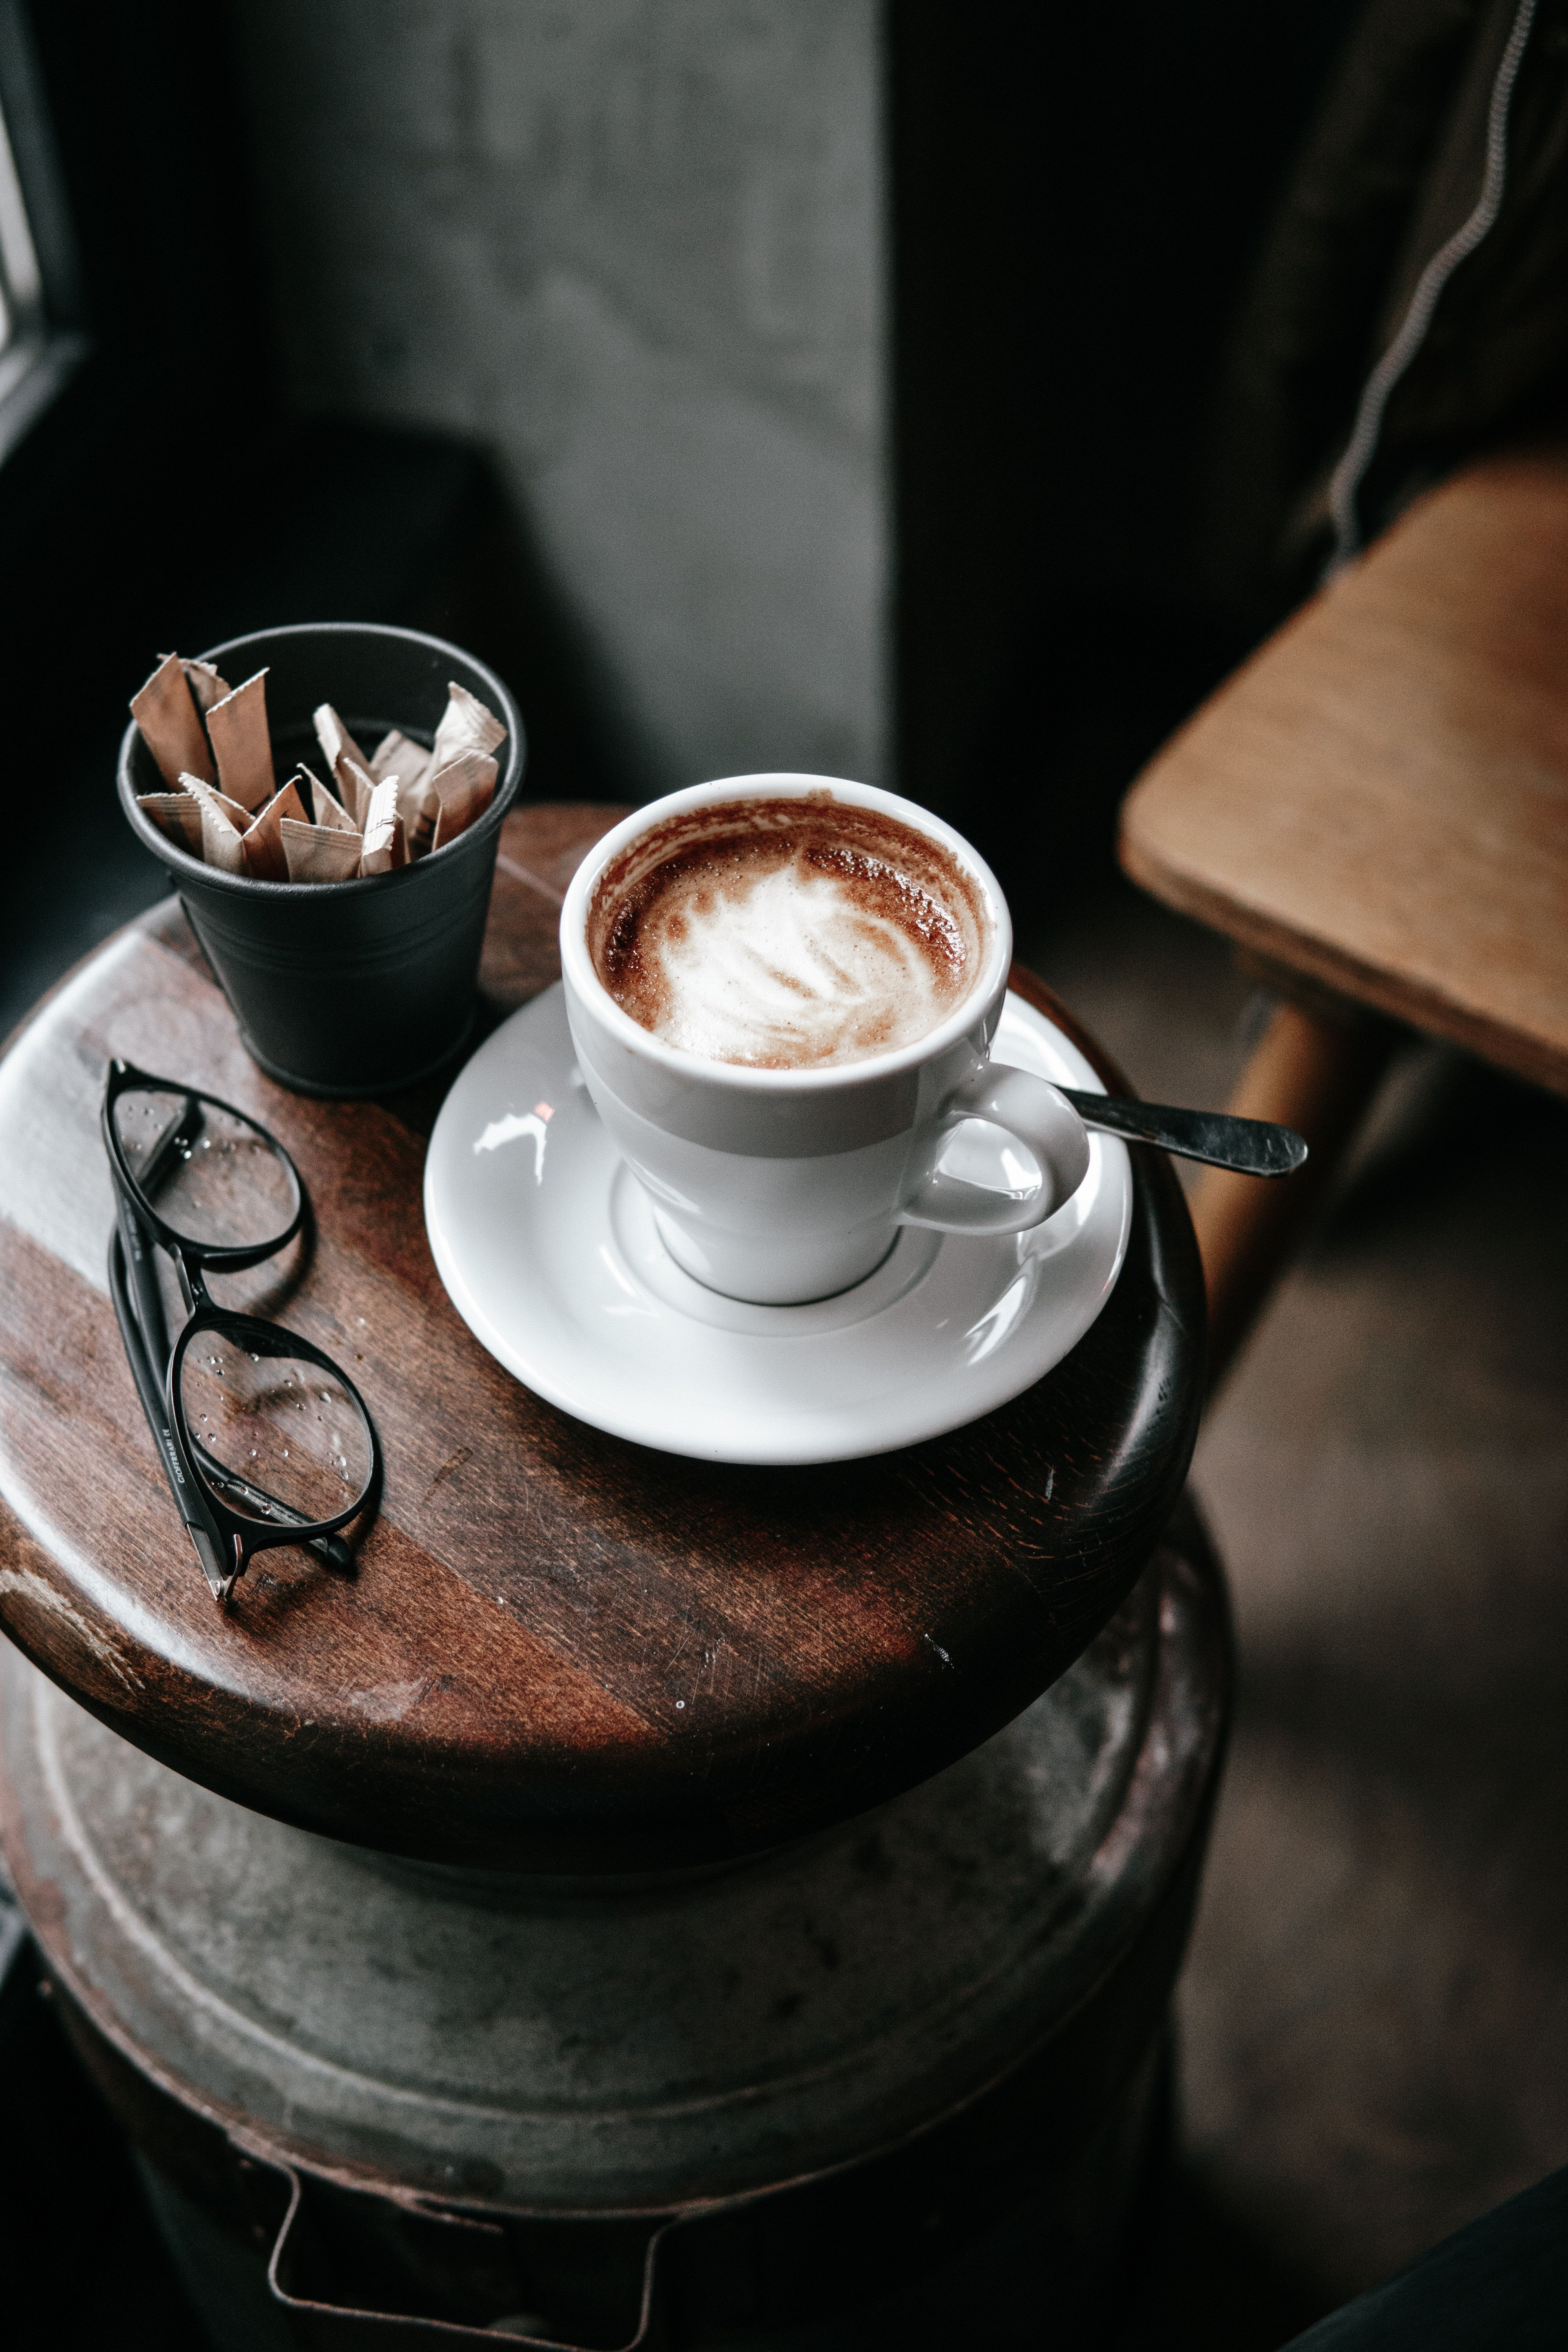 Wallpapers teacup, espresso, table, cortado, Coffee (avec ...